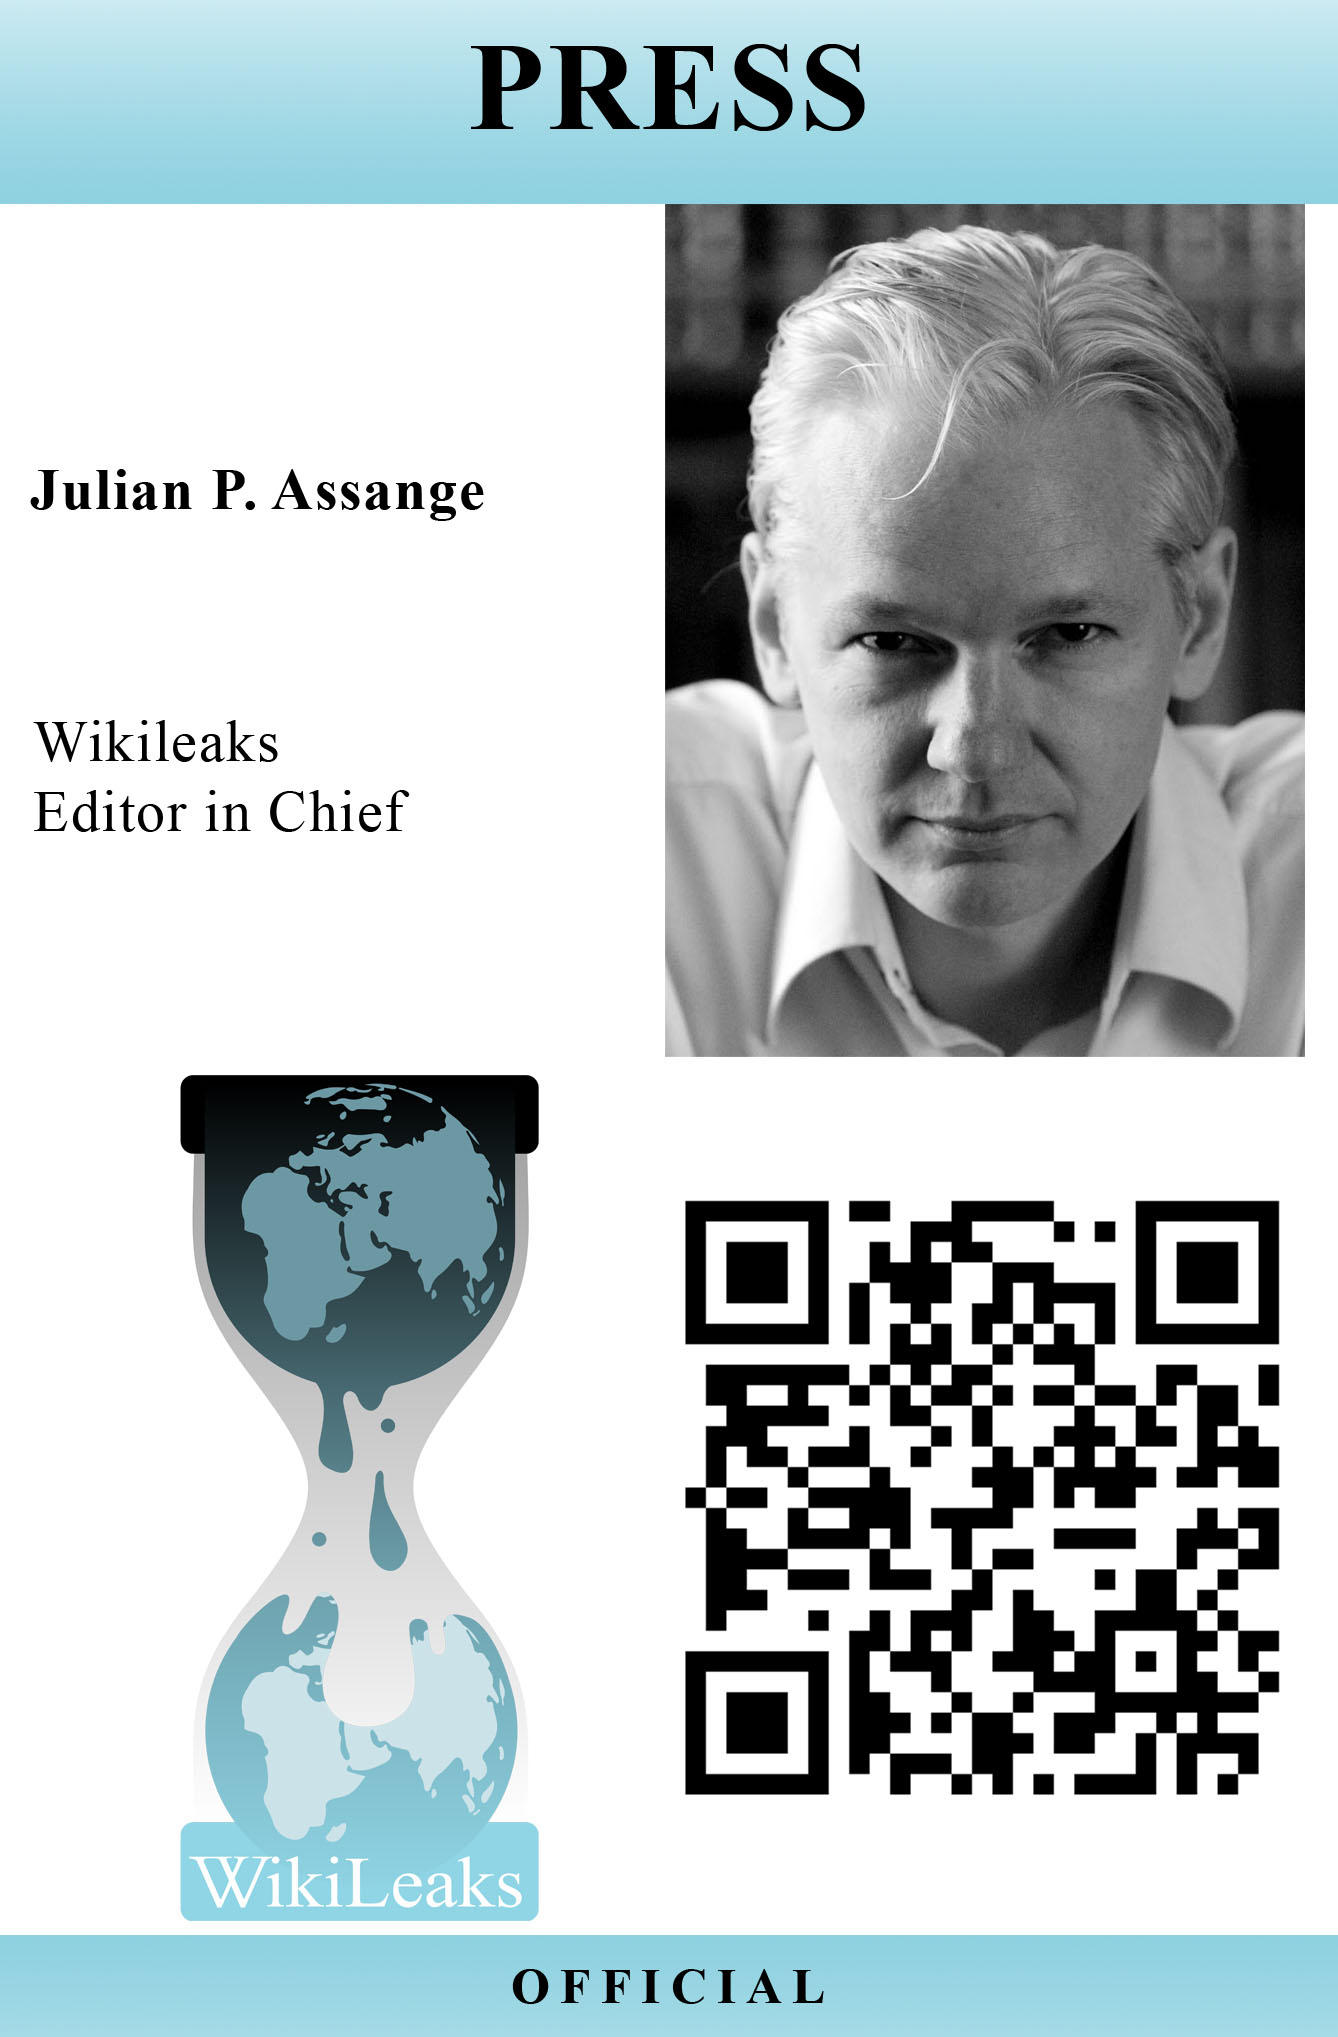 WikiLeaks Press Pass Template by Juliets-Designs